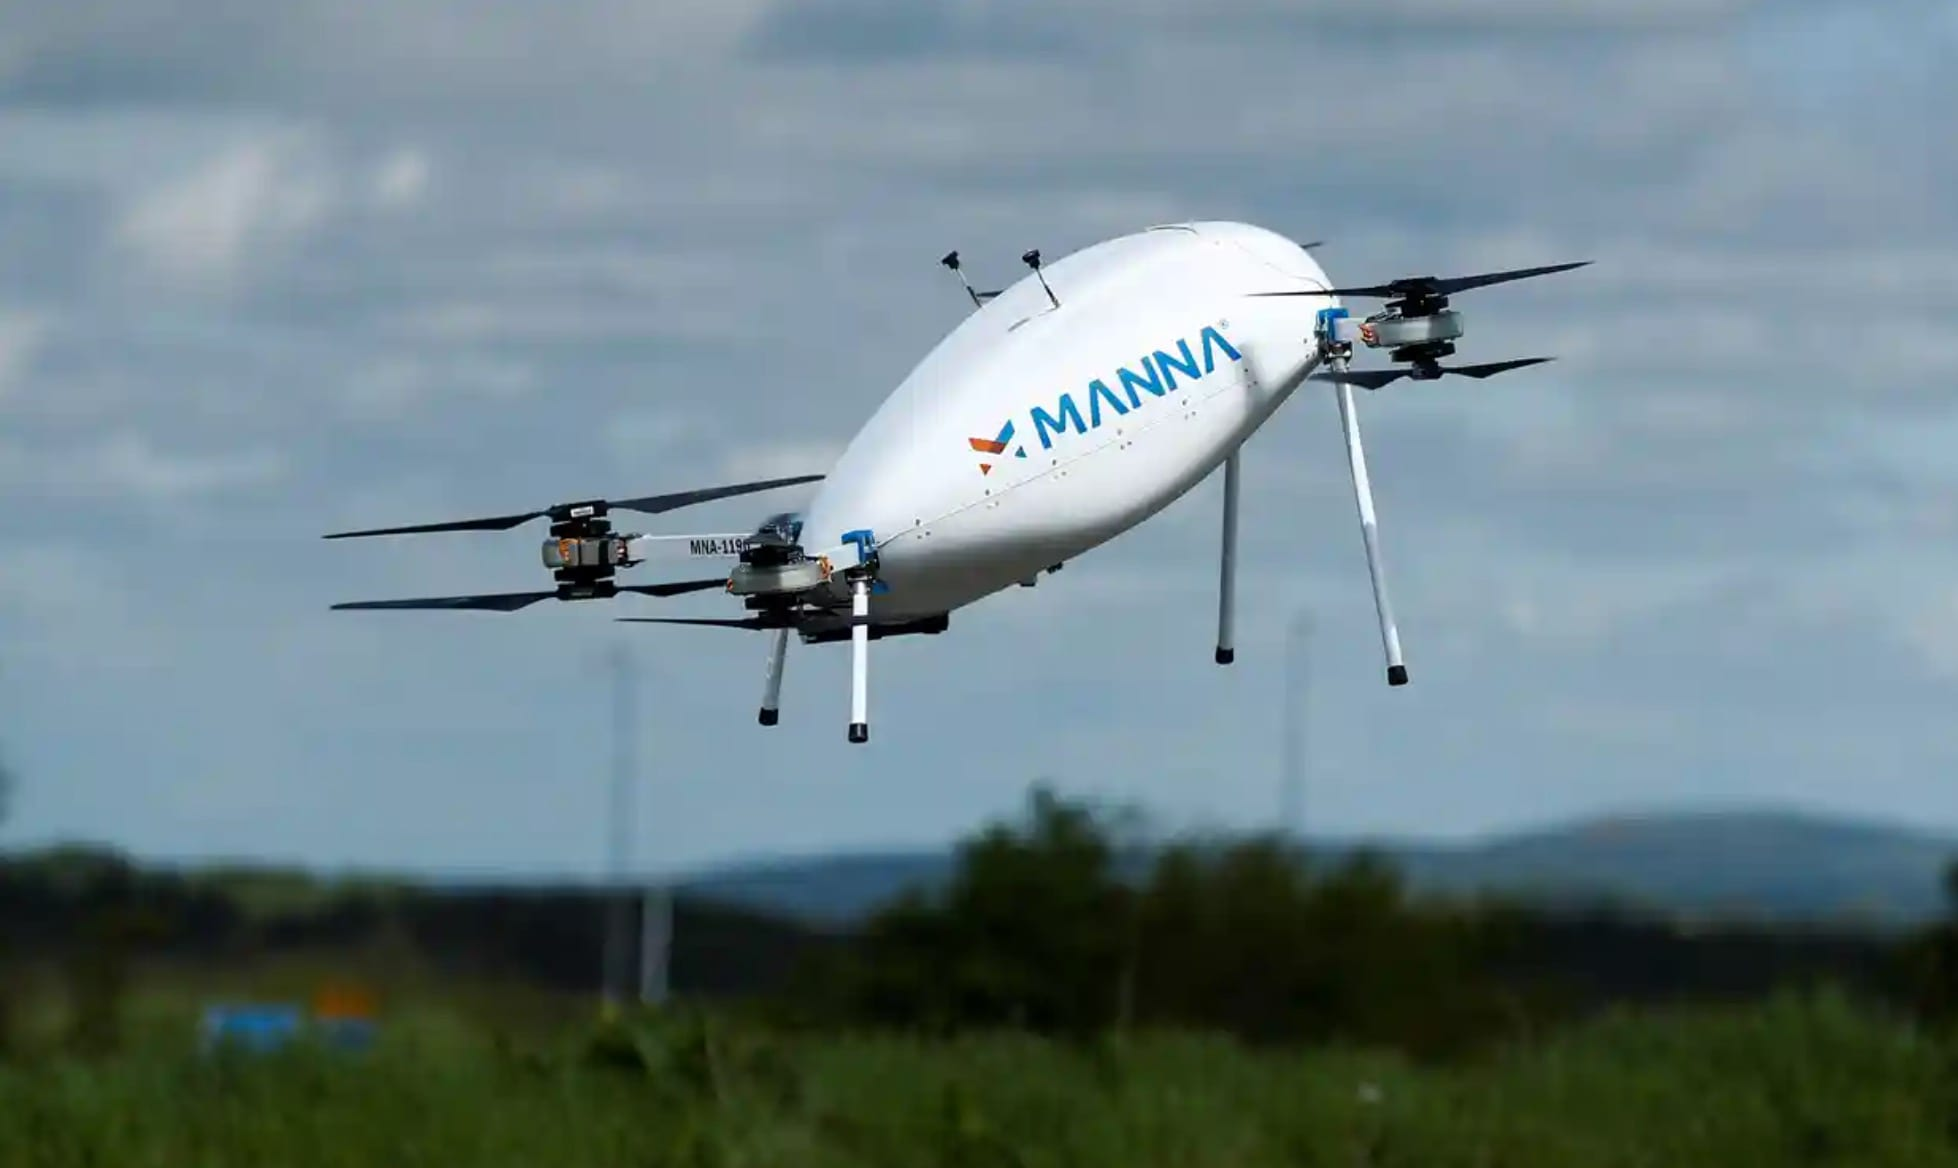 Tesco starts testing home drone delivery service in Ireland